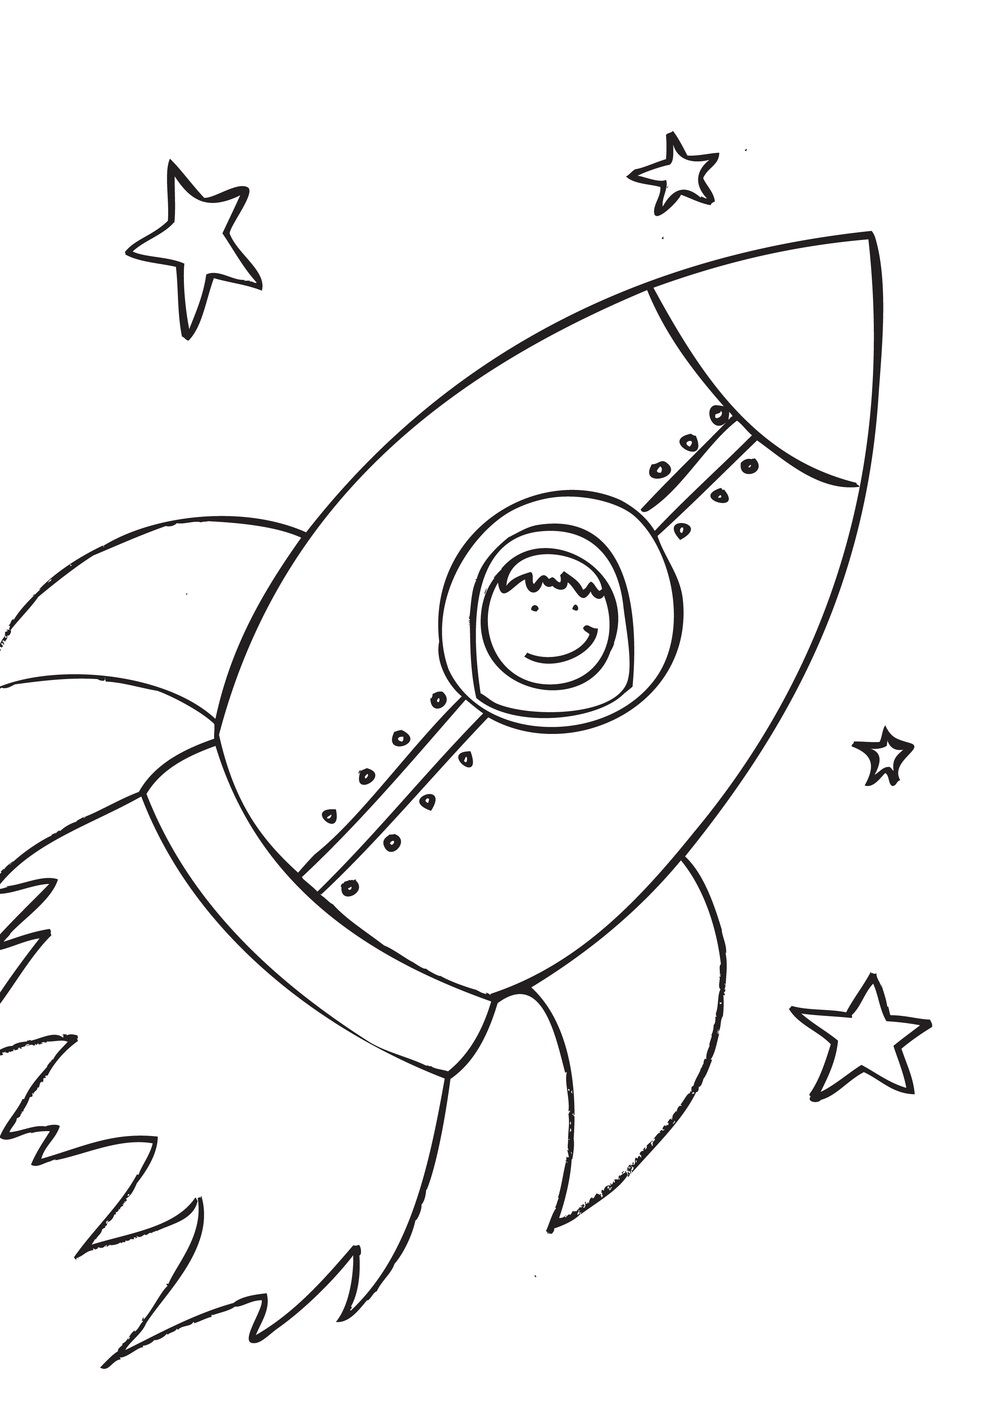 Coloring Pages For Rockets